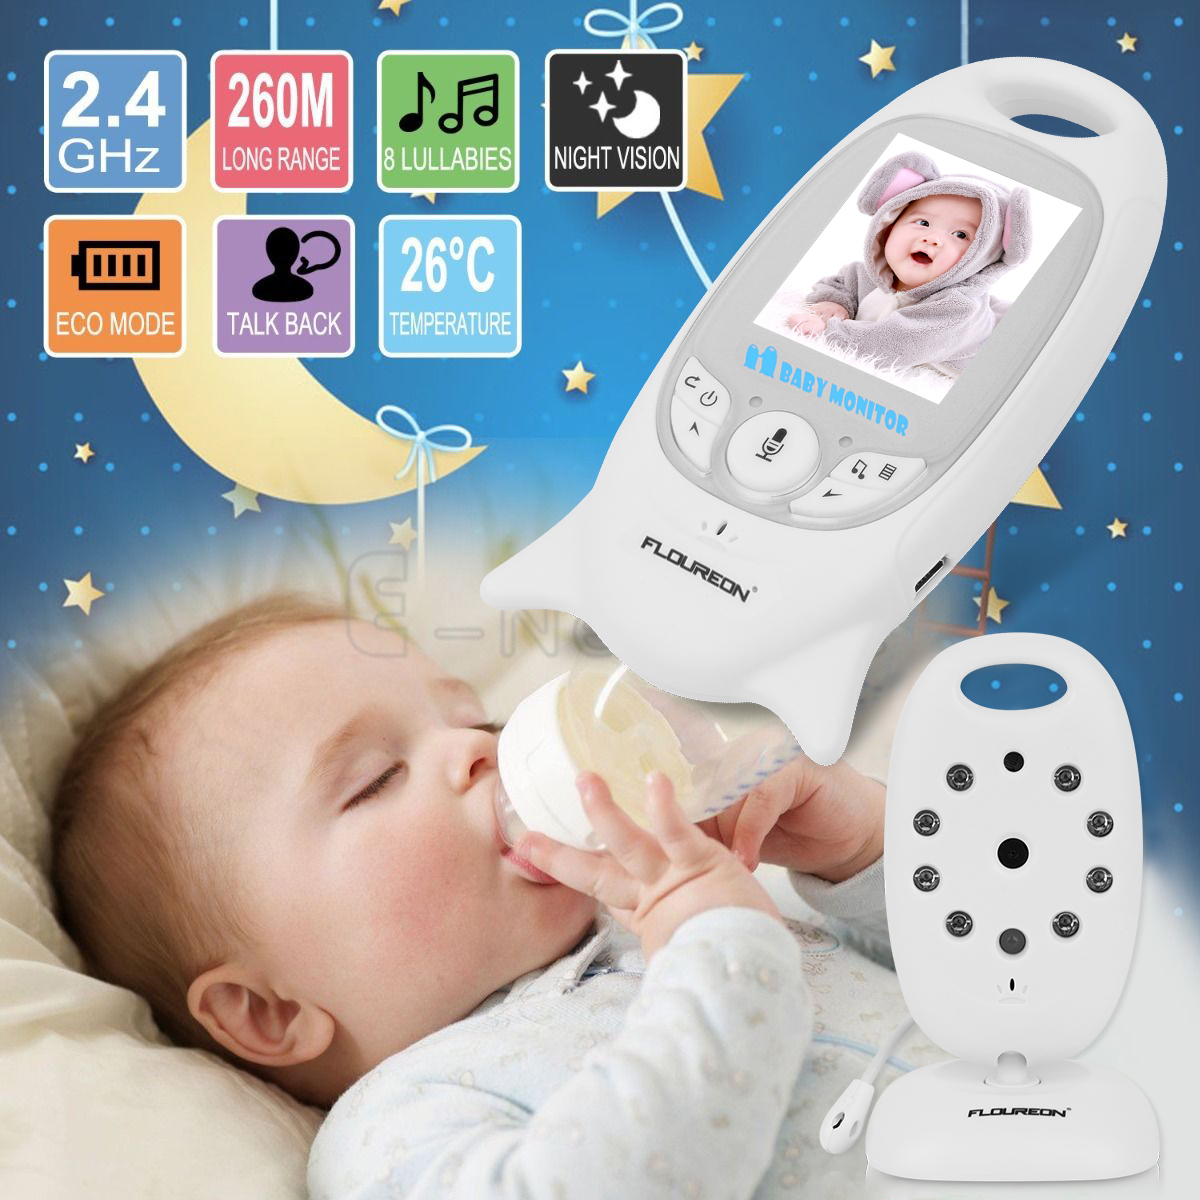 Video Baby Monitor with Auto Night Vision Digital Camera, Two Way Talkback, Temperature Sensor, Lullabies (2.0 Inch LCD Display)